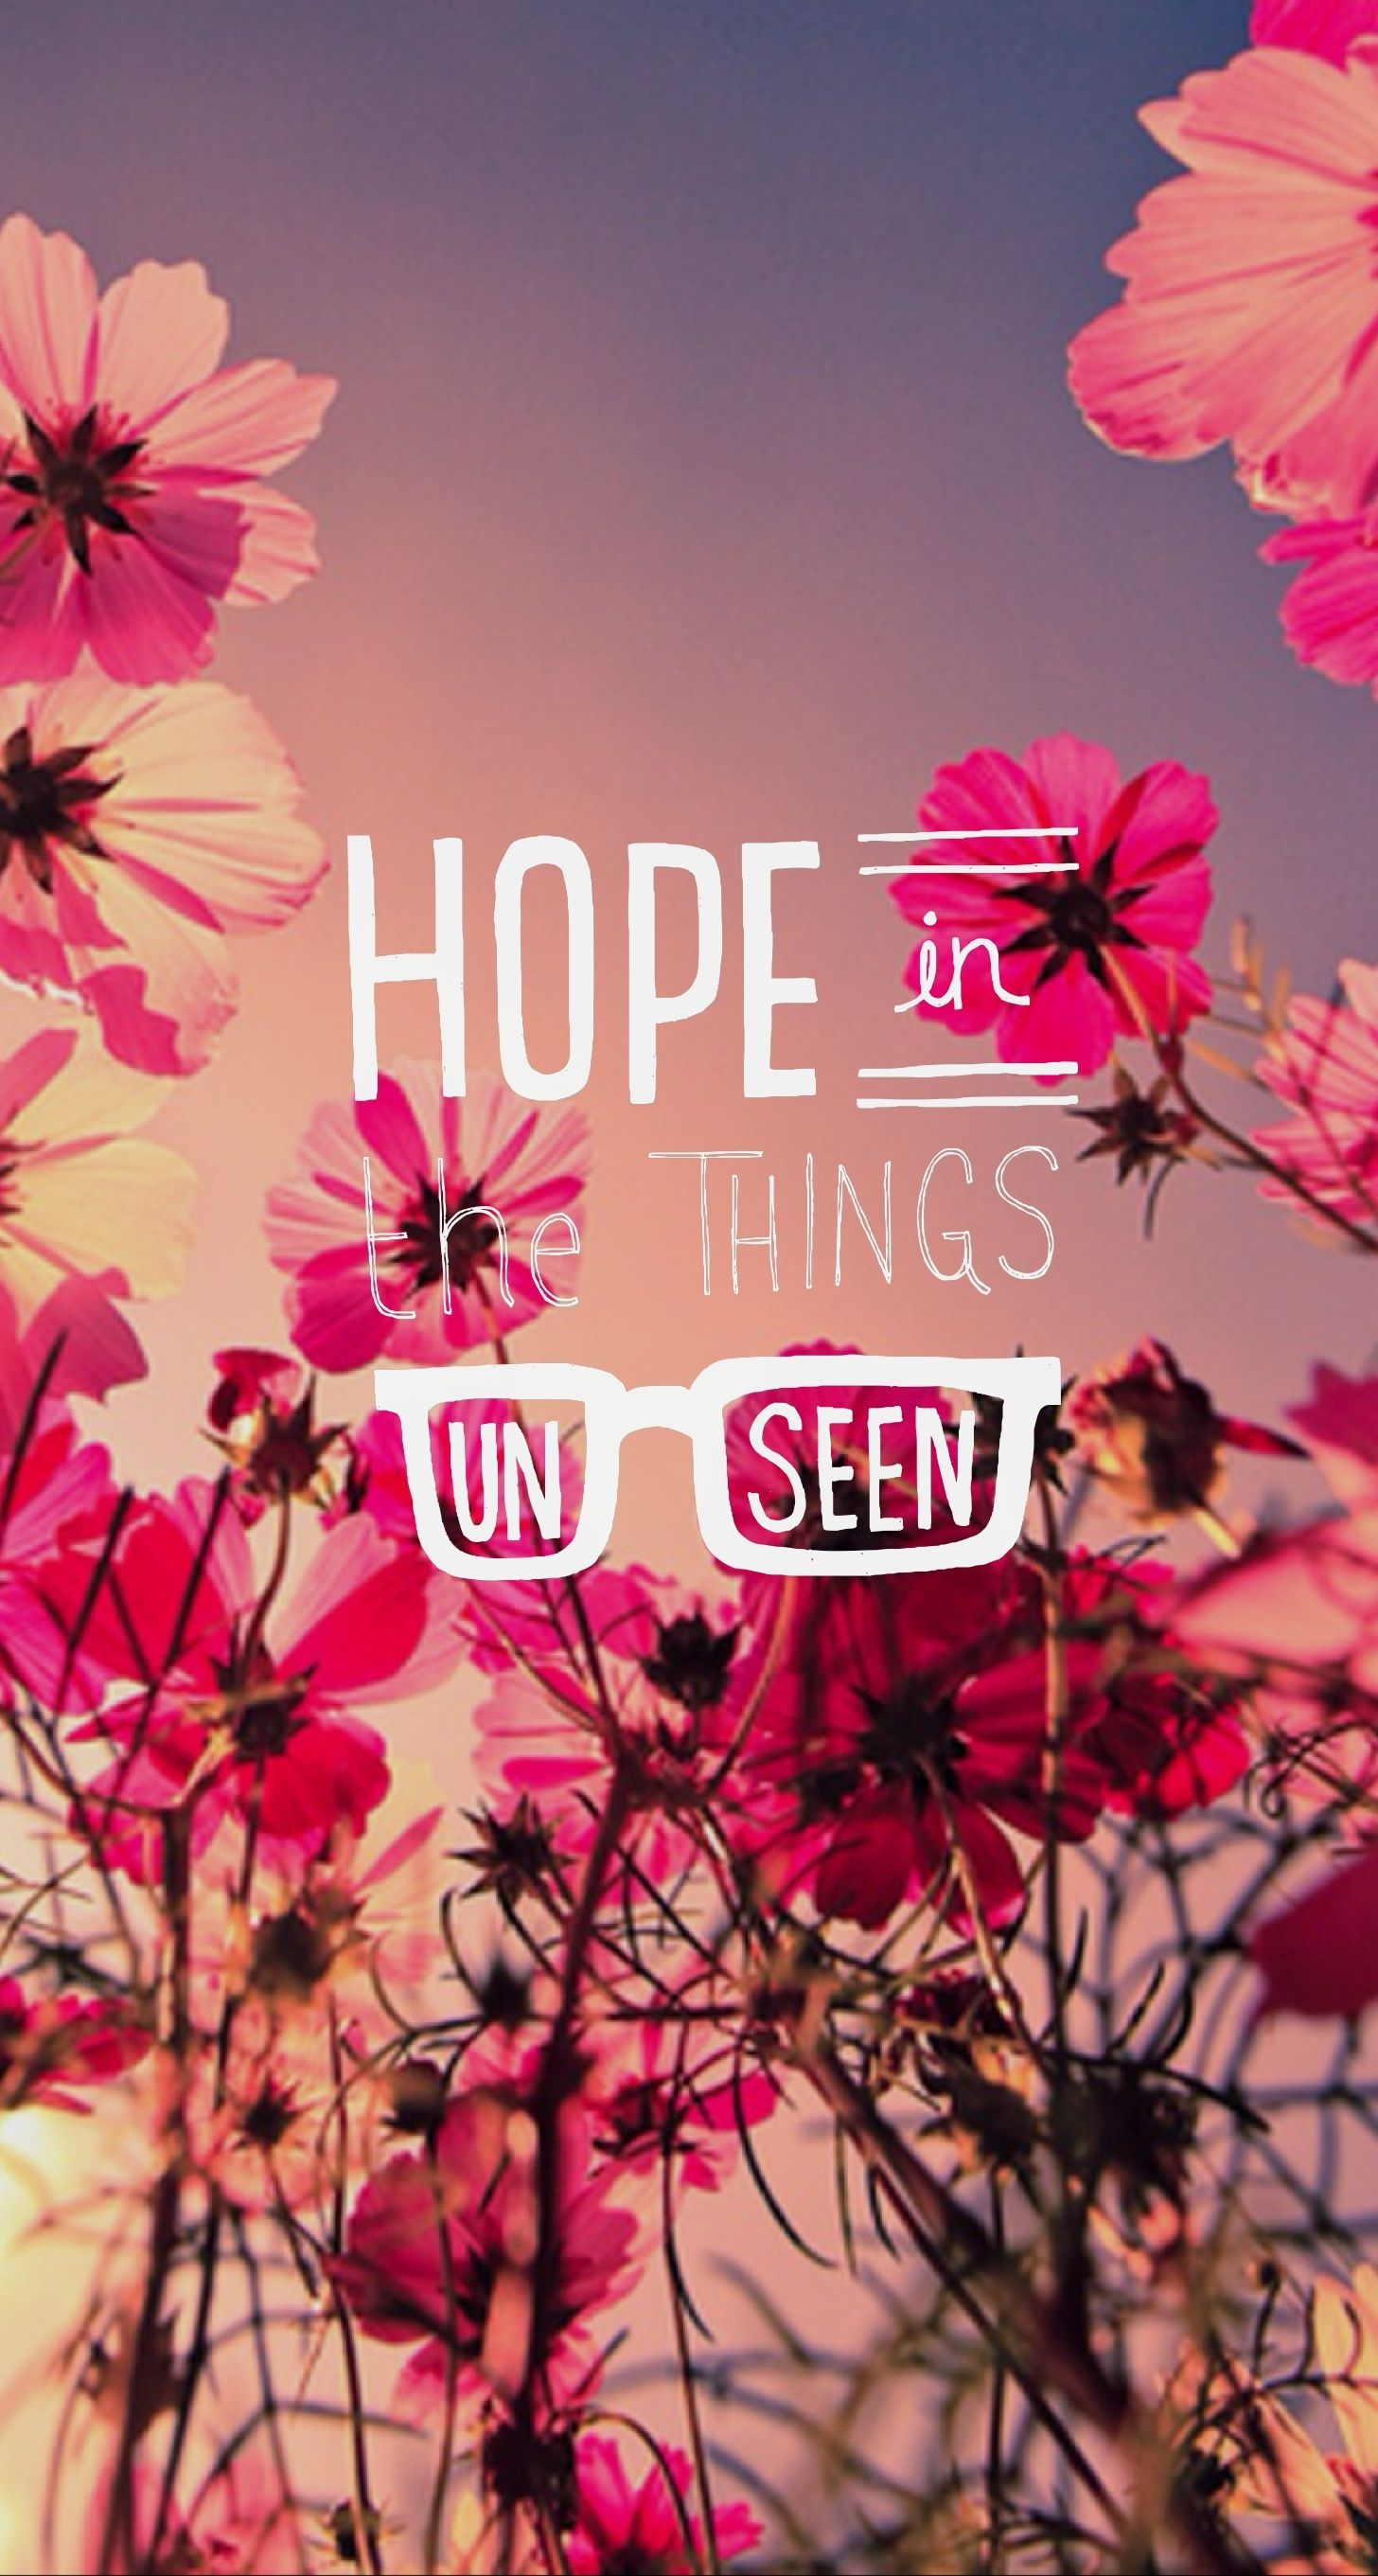 Hope K Quotes Cute Flower Wallpapers Tumblr Quotes